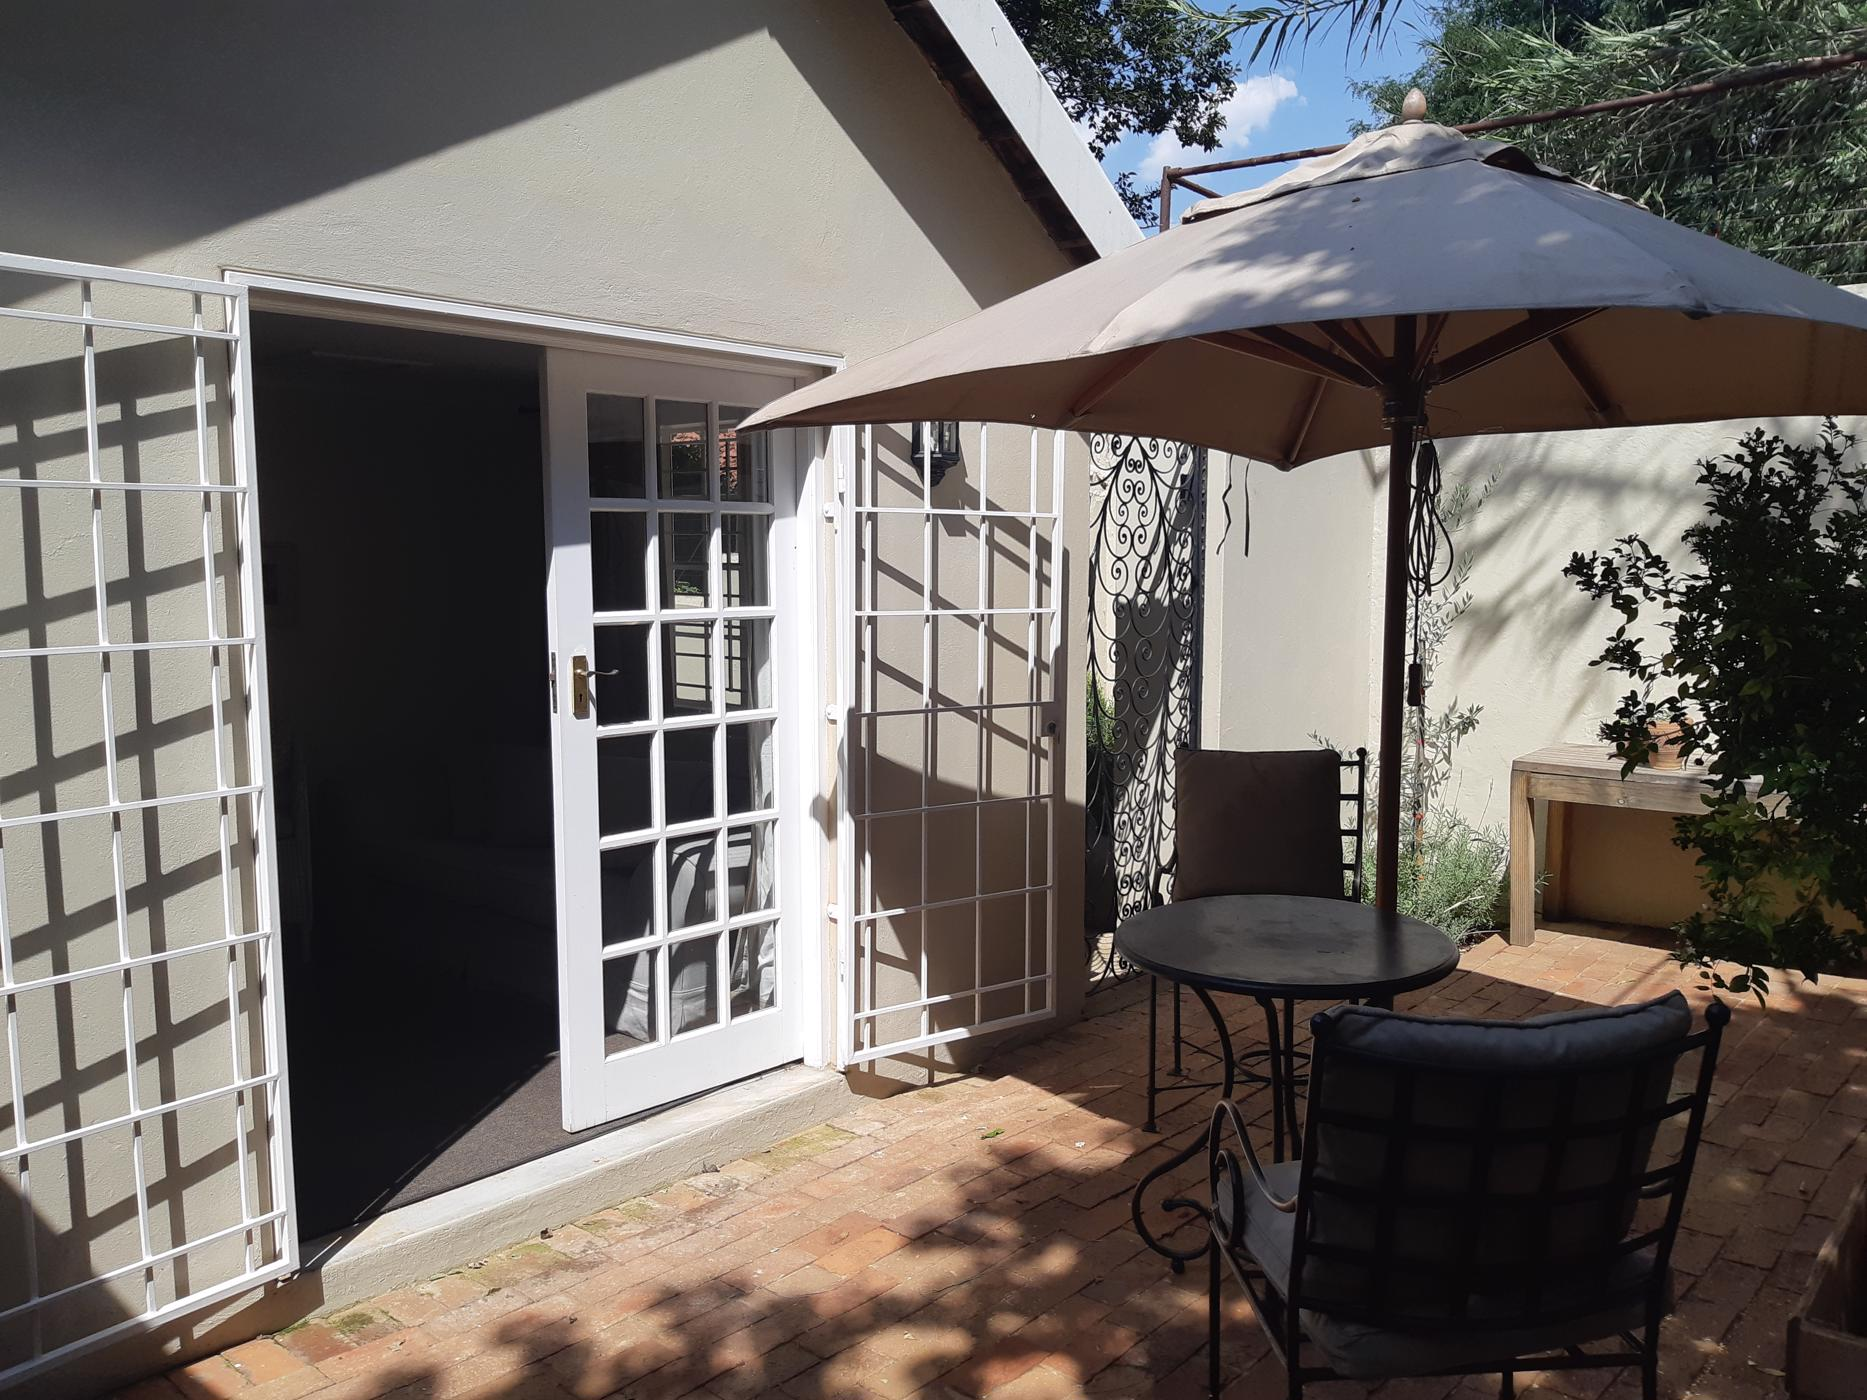 https://listing.pamgolding.co.za/images/properties/201901/1257485/H/1257485_H_12.jpg